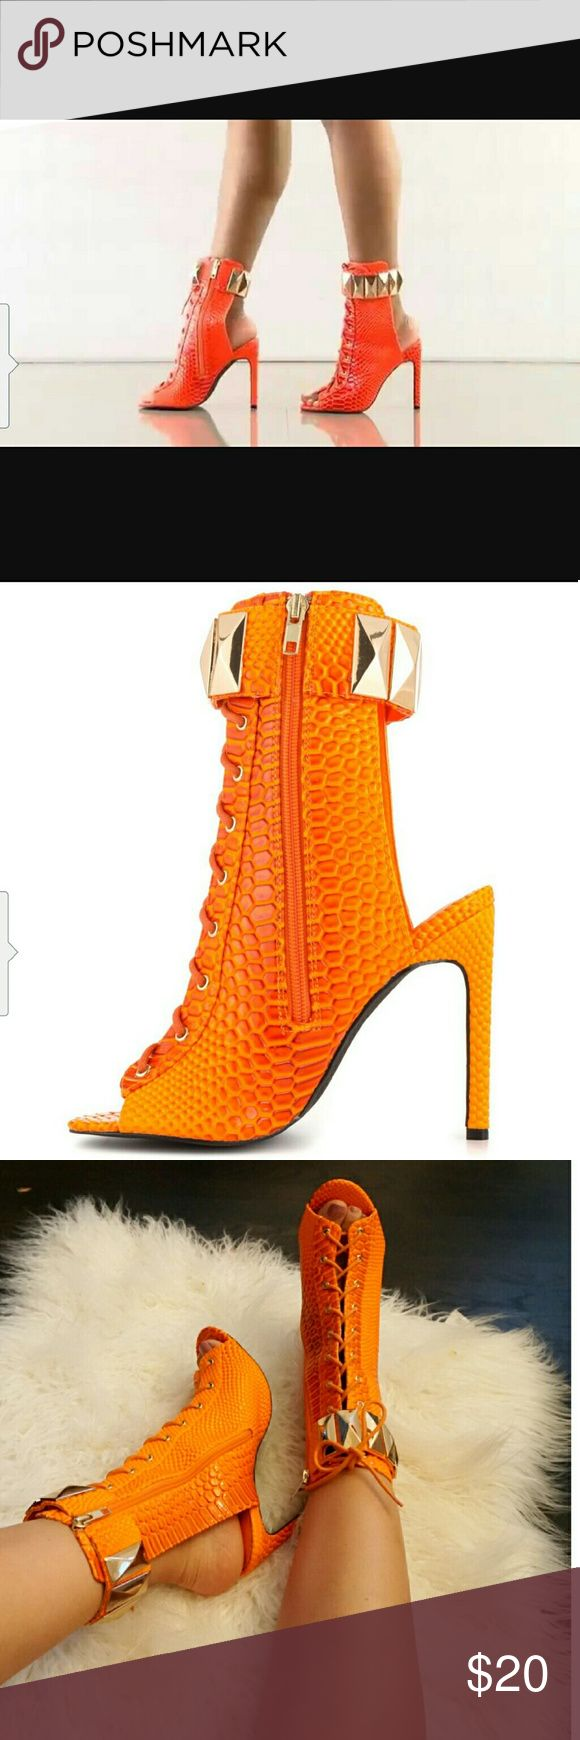 Privileged - Fight Night Heels size 9 Material: Faux Snake Skin Patent Leatherette Heel Height: 4.75 in Fit: True to size Size: 9 Color: Neon Orange Shoes Heels